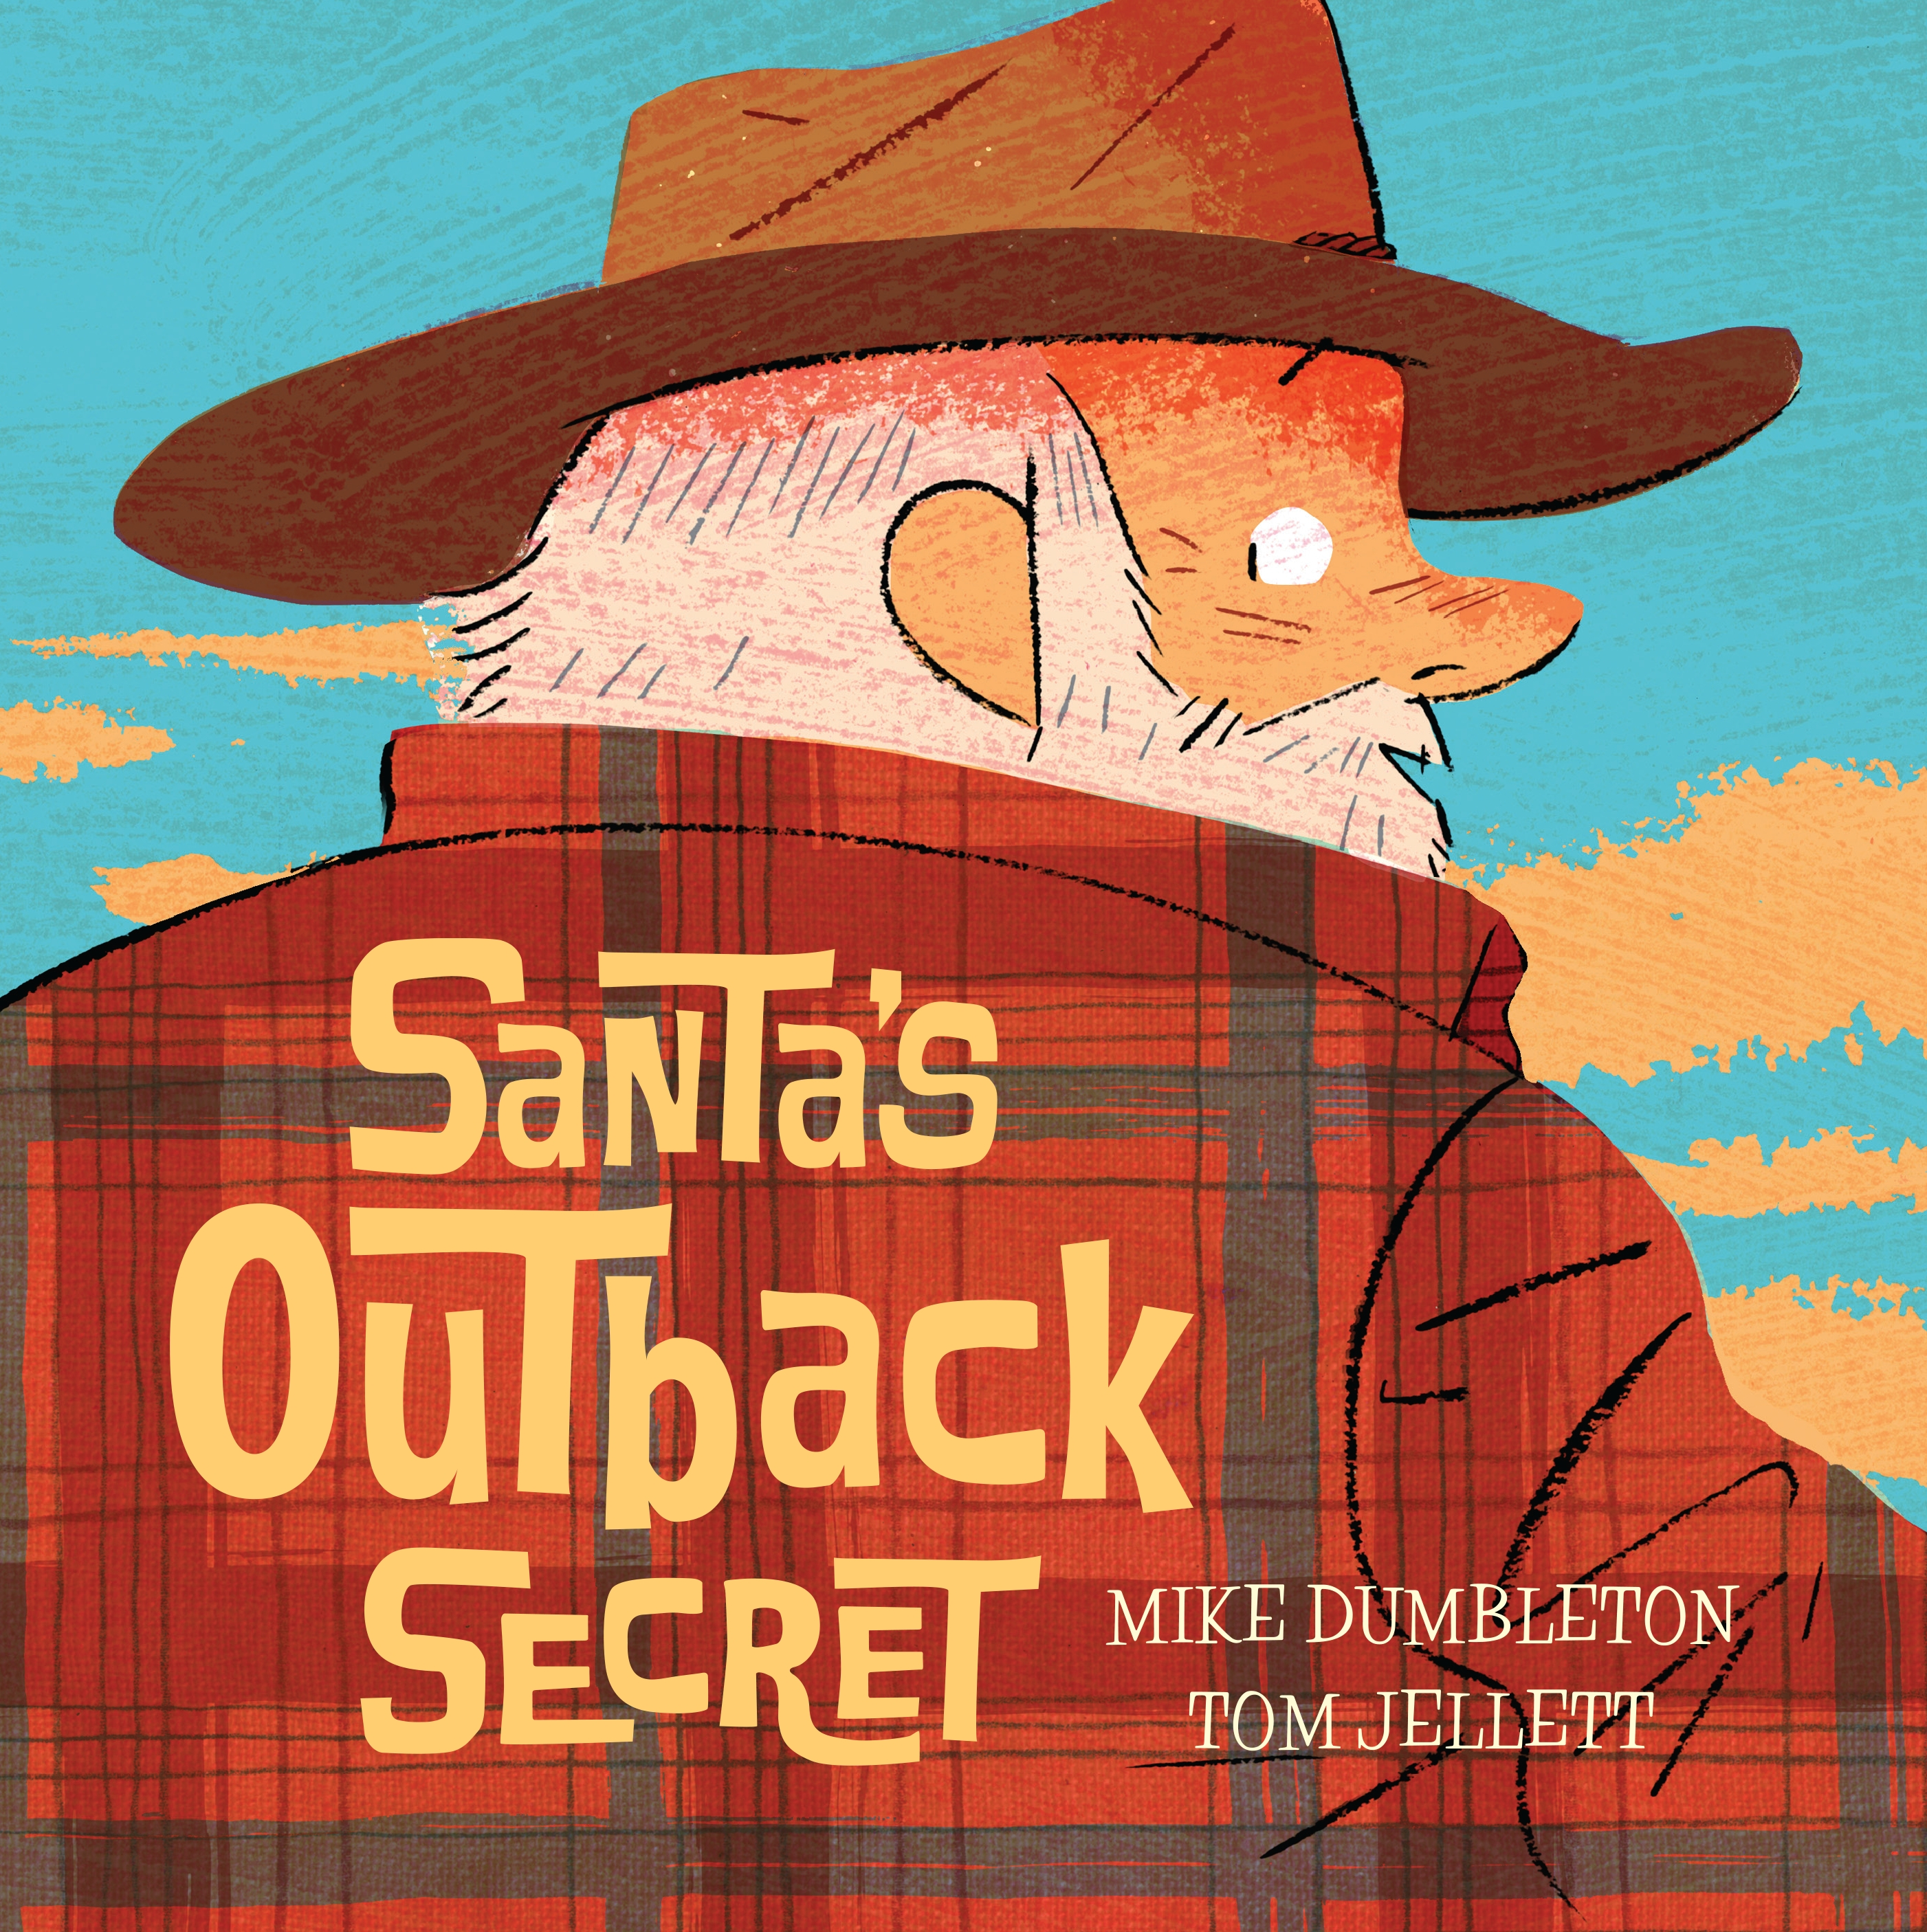 Santas outback secret by mike dumbleton penguin books australia santas outback secret spiritdancerdesigns Choice Image